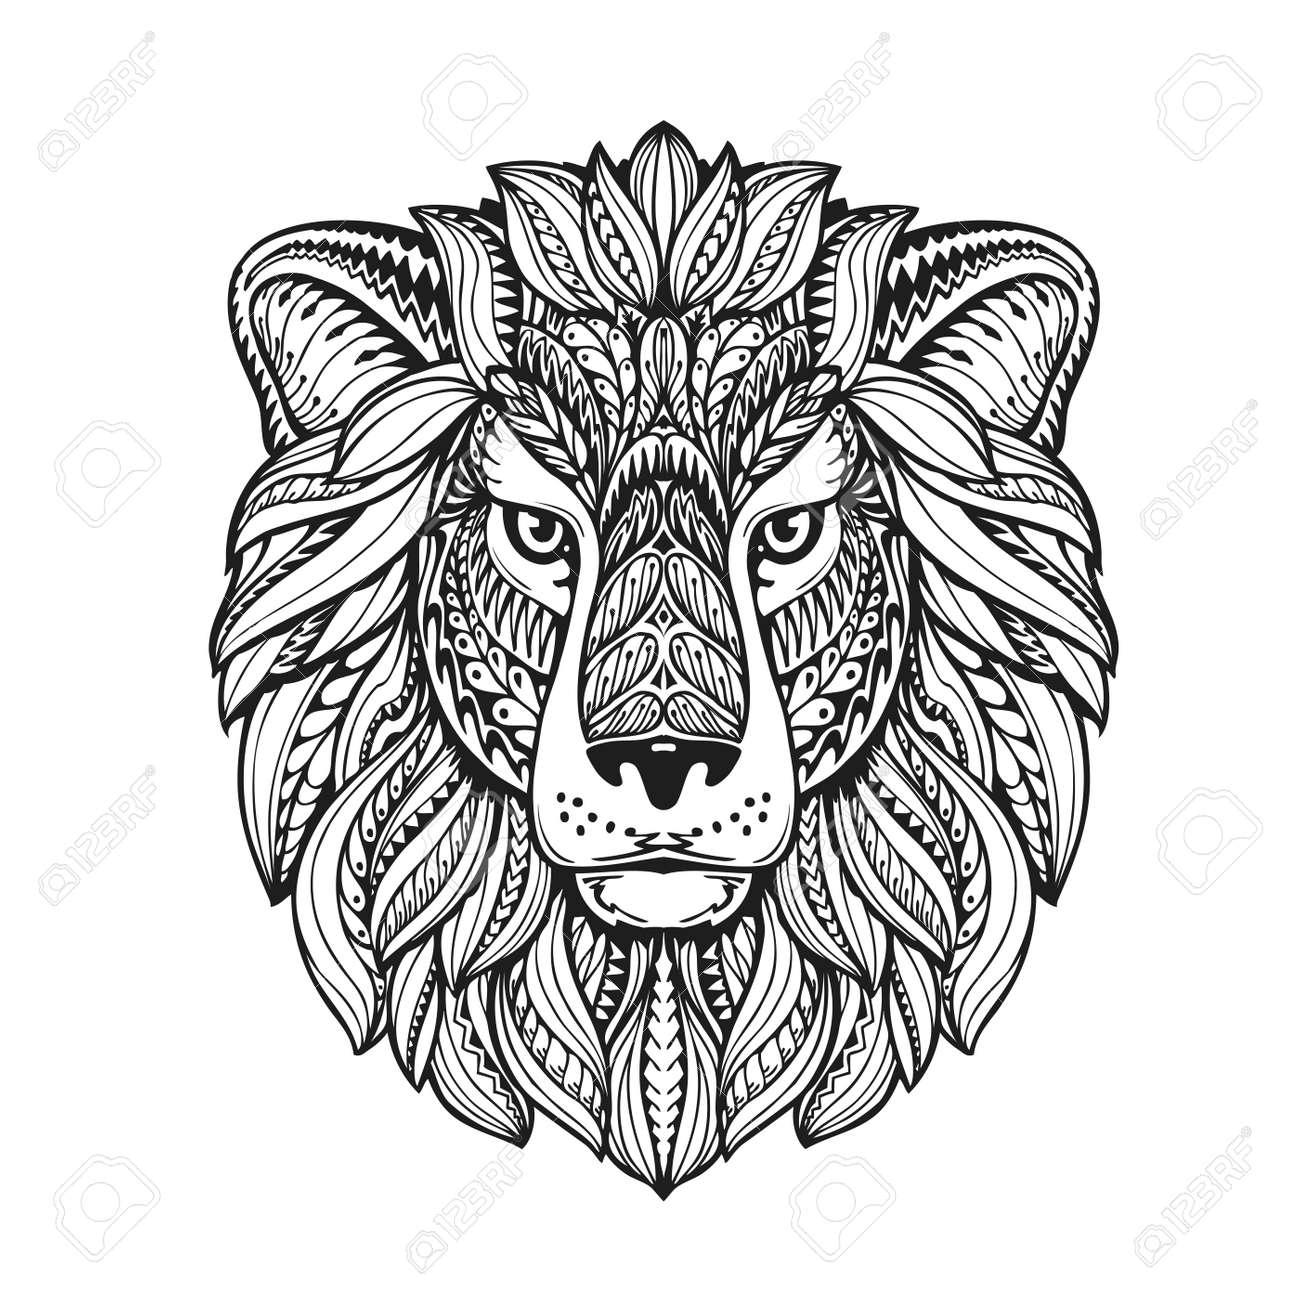 beautiful lion ethnic graphic style with herbal ornaments and patterned mane. vector illustration - 62978089